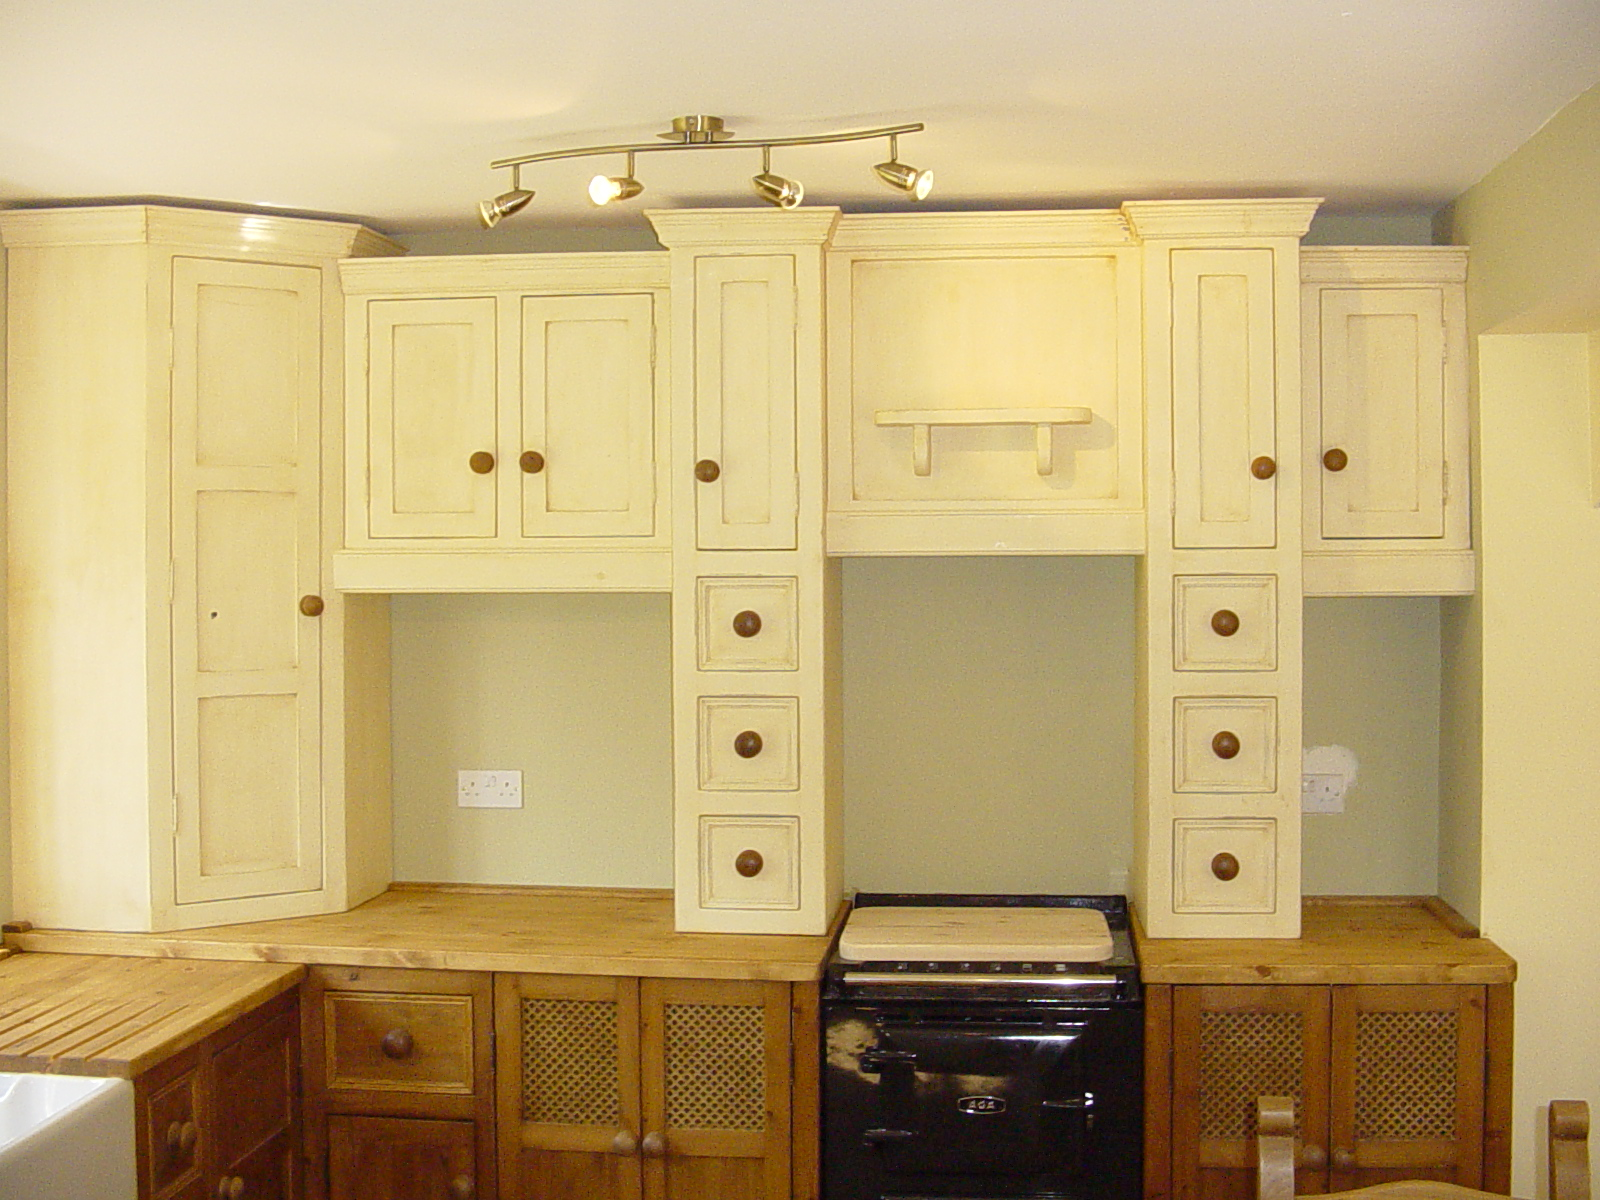 Maurice and zara 39 s oak kitchen units and cream wall units for Cream kitchen wall units